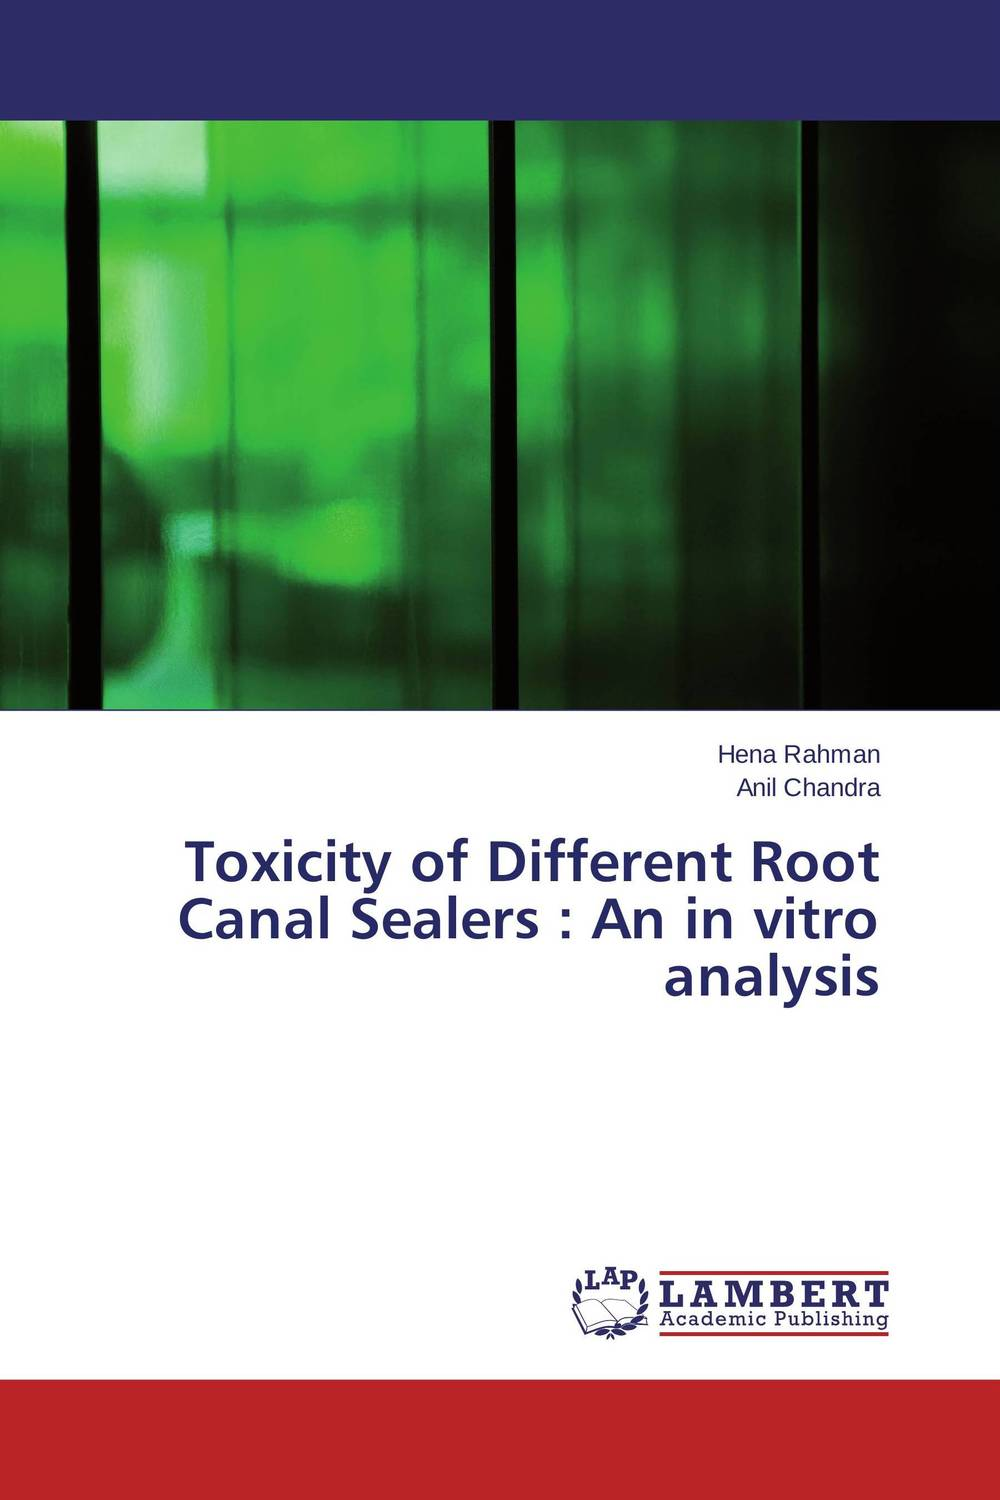 Toxicity of Different Root Canal Sealers : An in vitro analysis recent advances in root canal irrigation techniques